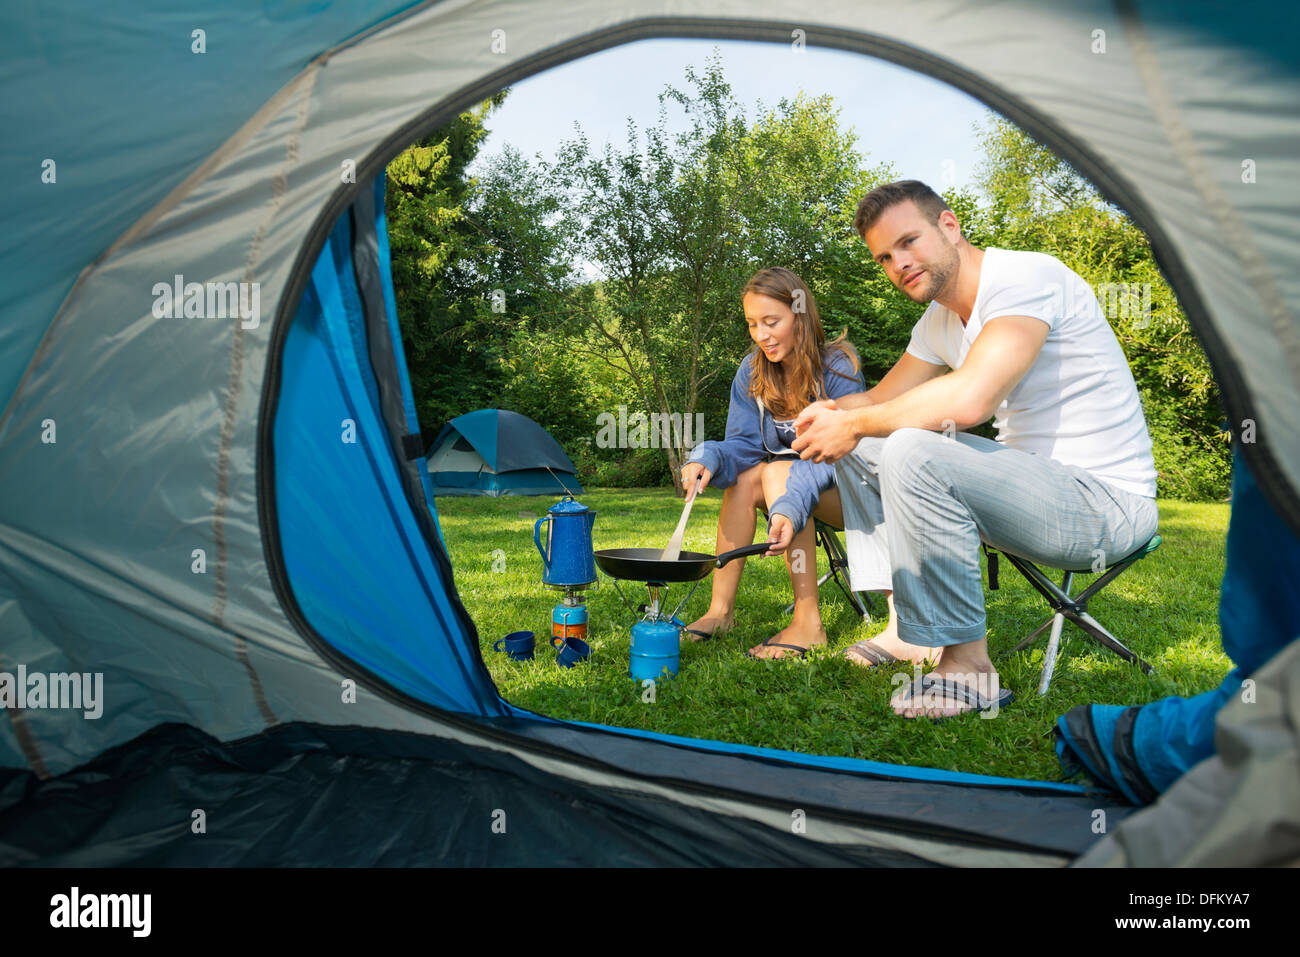 A young couple cooking in front of a tent - Stock Image